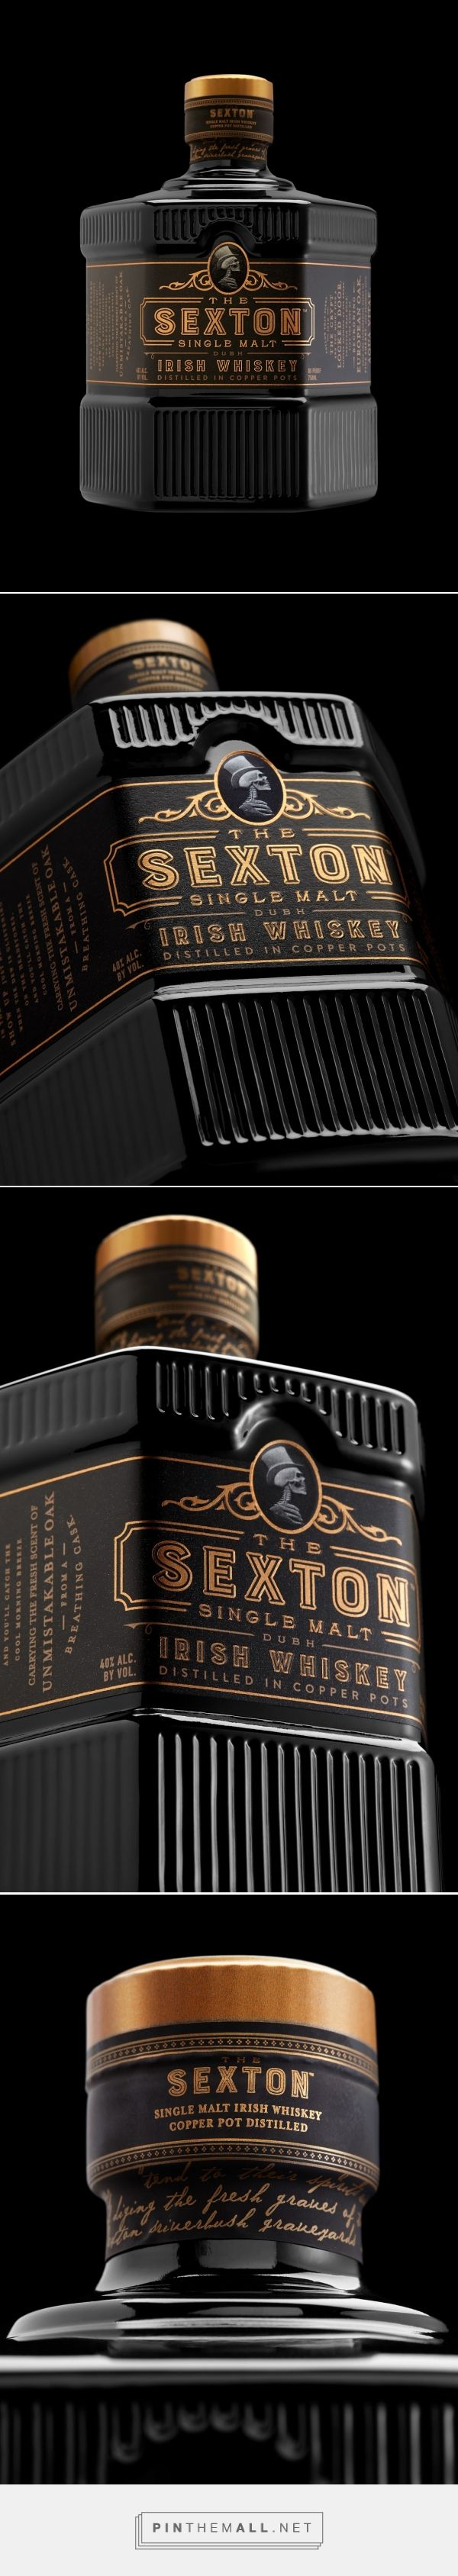 The Sexton whiskey packaging design by Stranger & Stranger - http://www.packagingoftheworld.com/2017/11/the-sexton.html